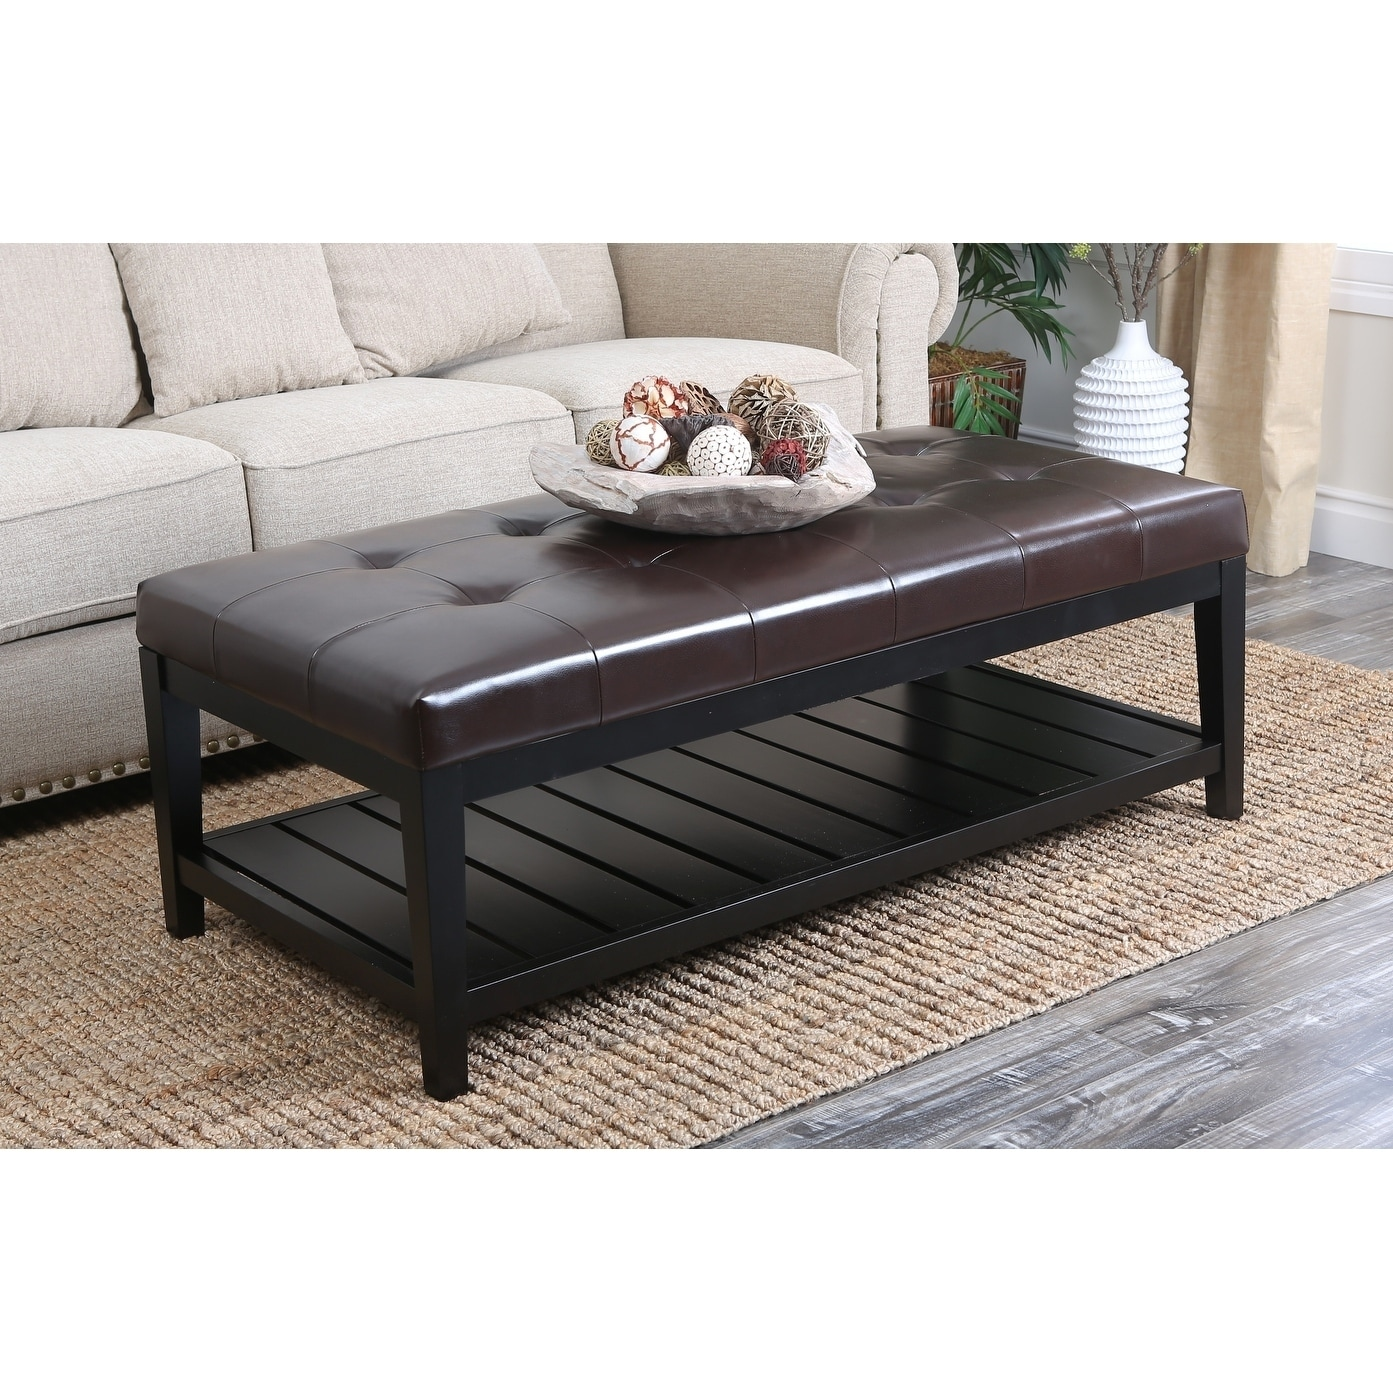 leather room charming tufed coffee table modern your ikea idea for rectangular decor ottoman living black